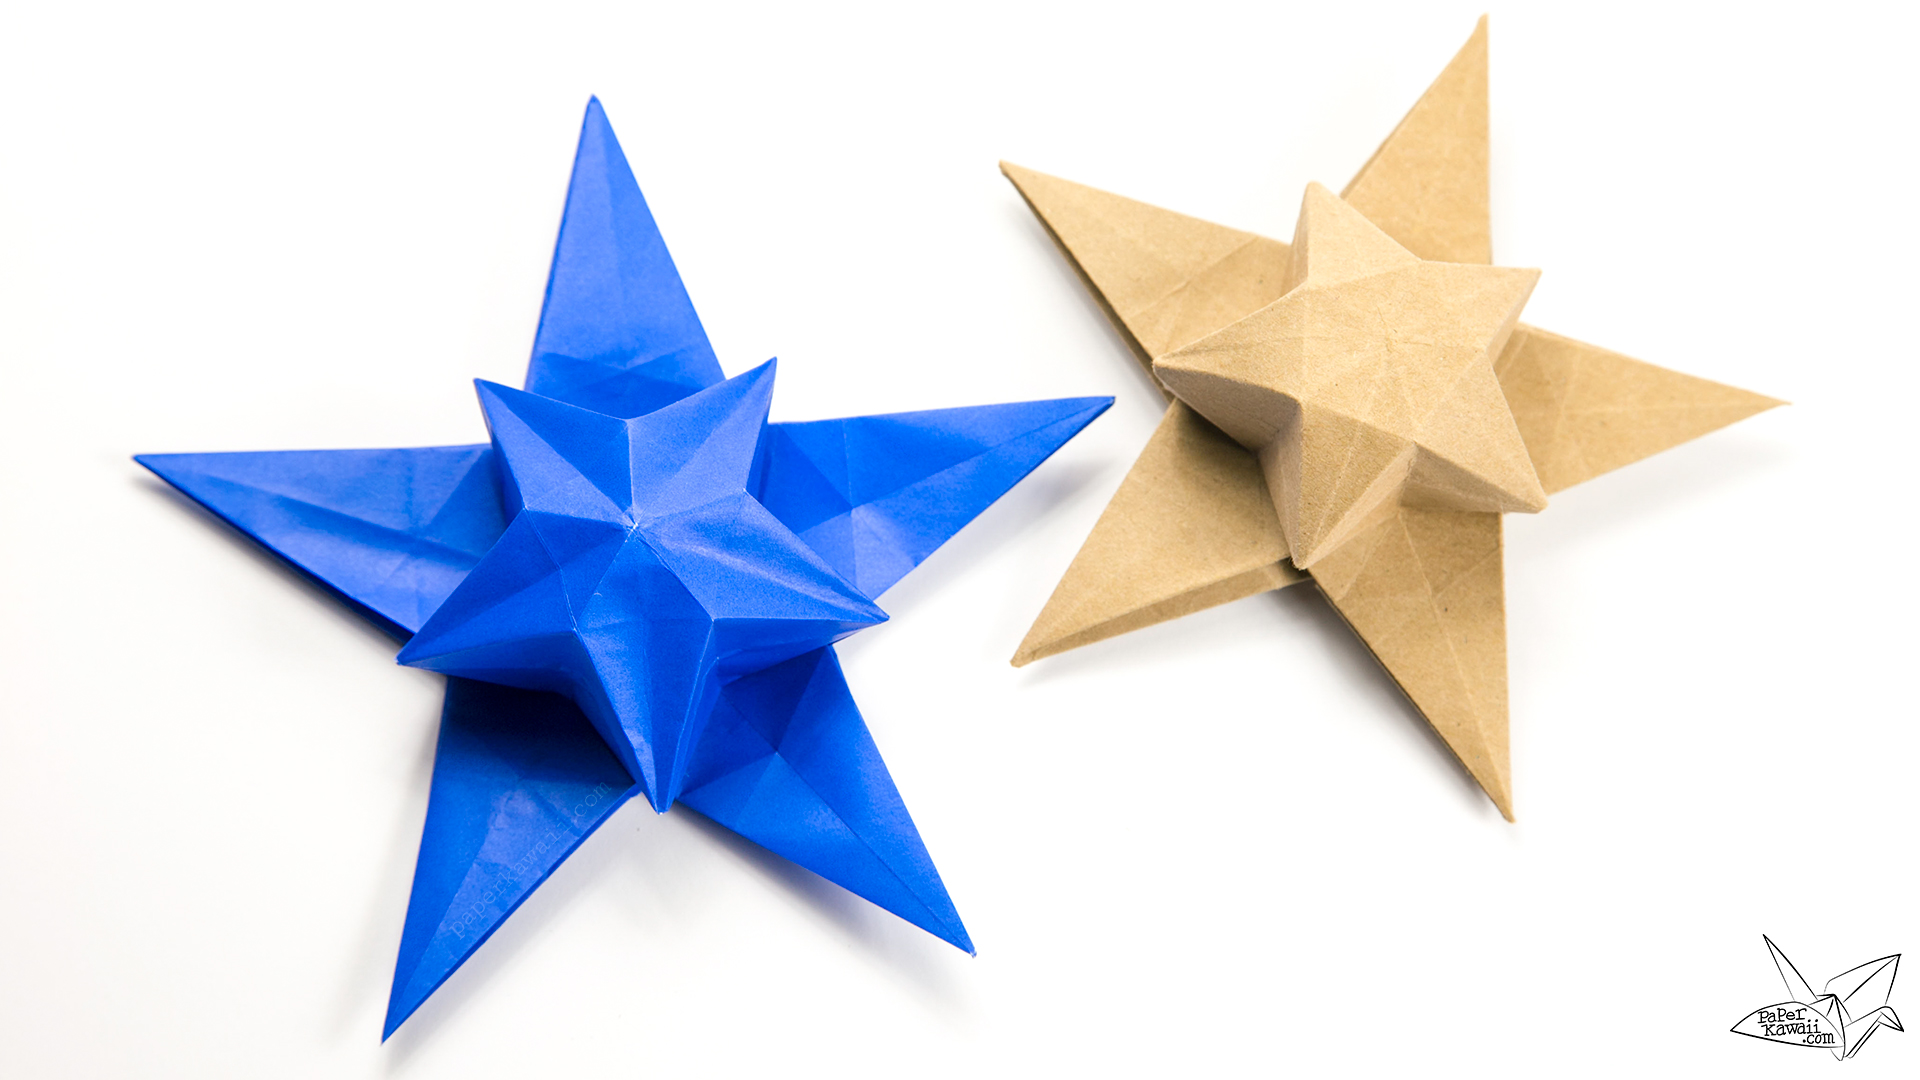 origami star paper Images of origami models from a single sheet of paper, folded by maria sinayskaya.